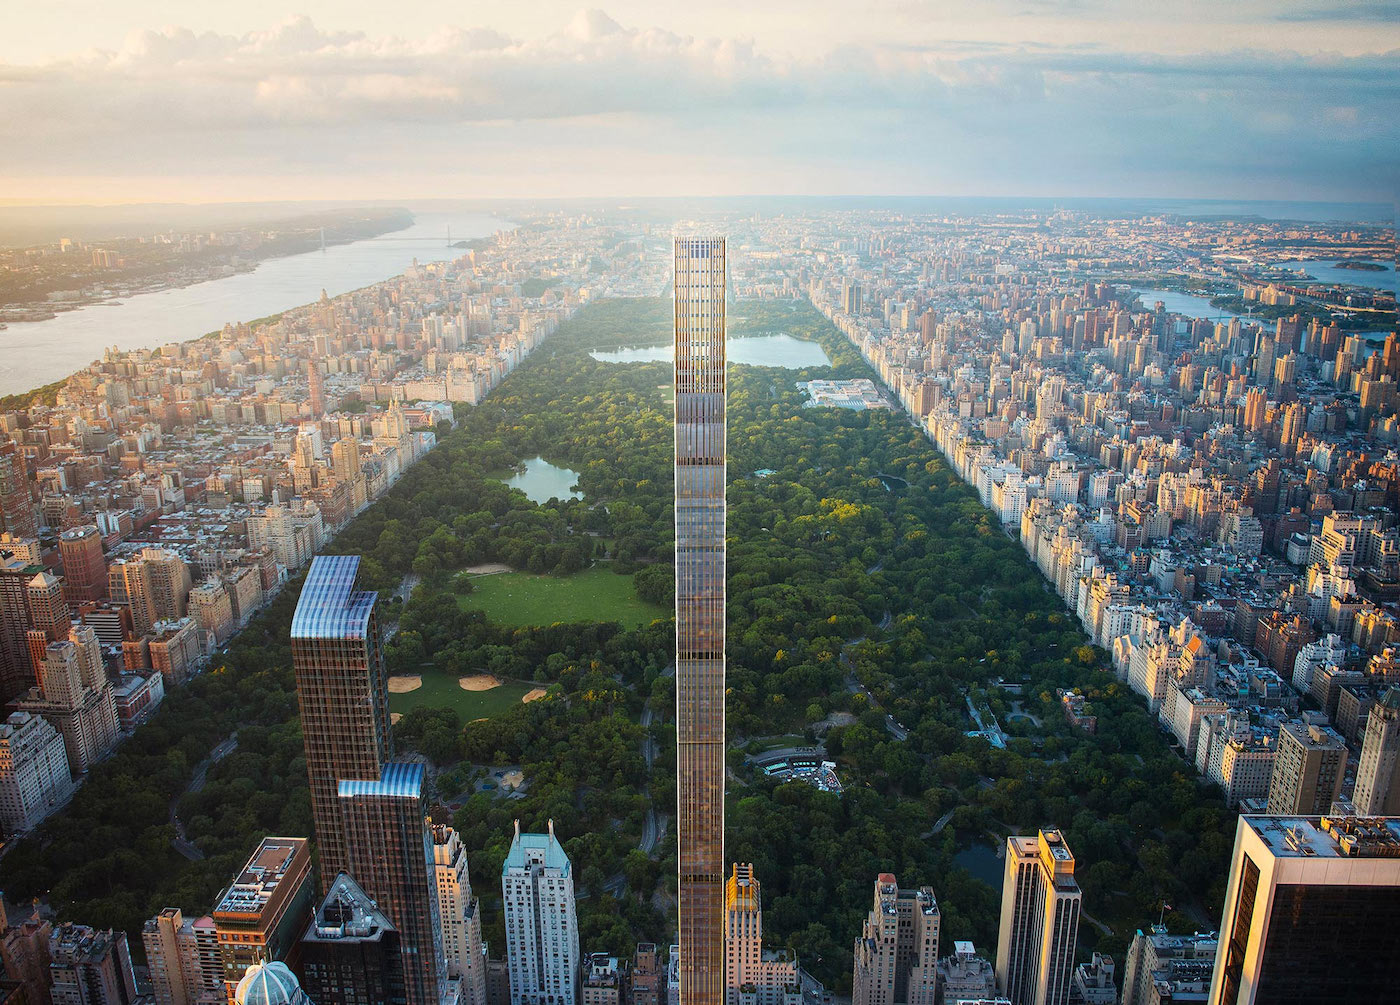 A House Like a Needle: Living In One of The World's Tallest Buildings in New York City 1